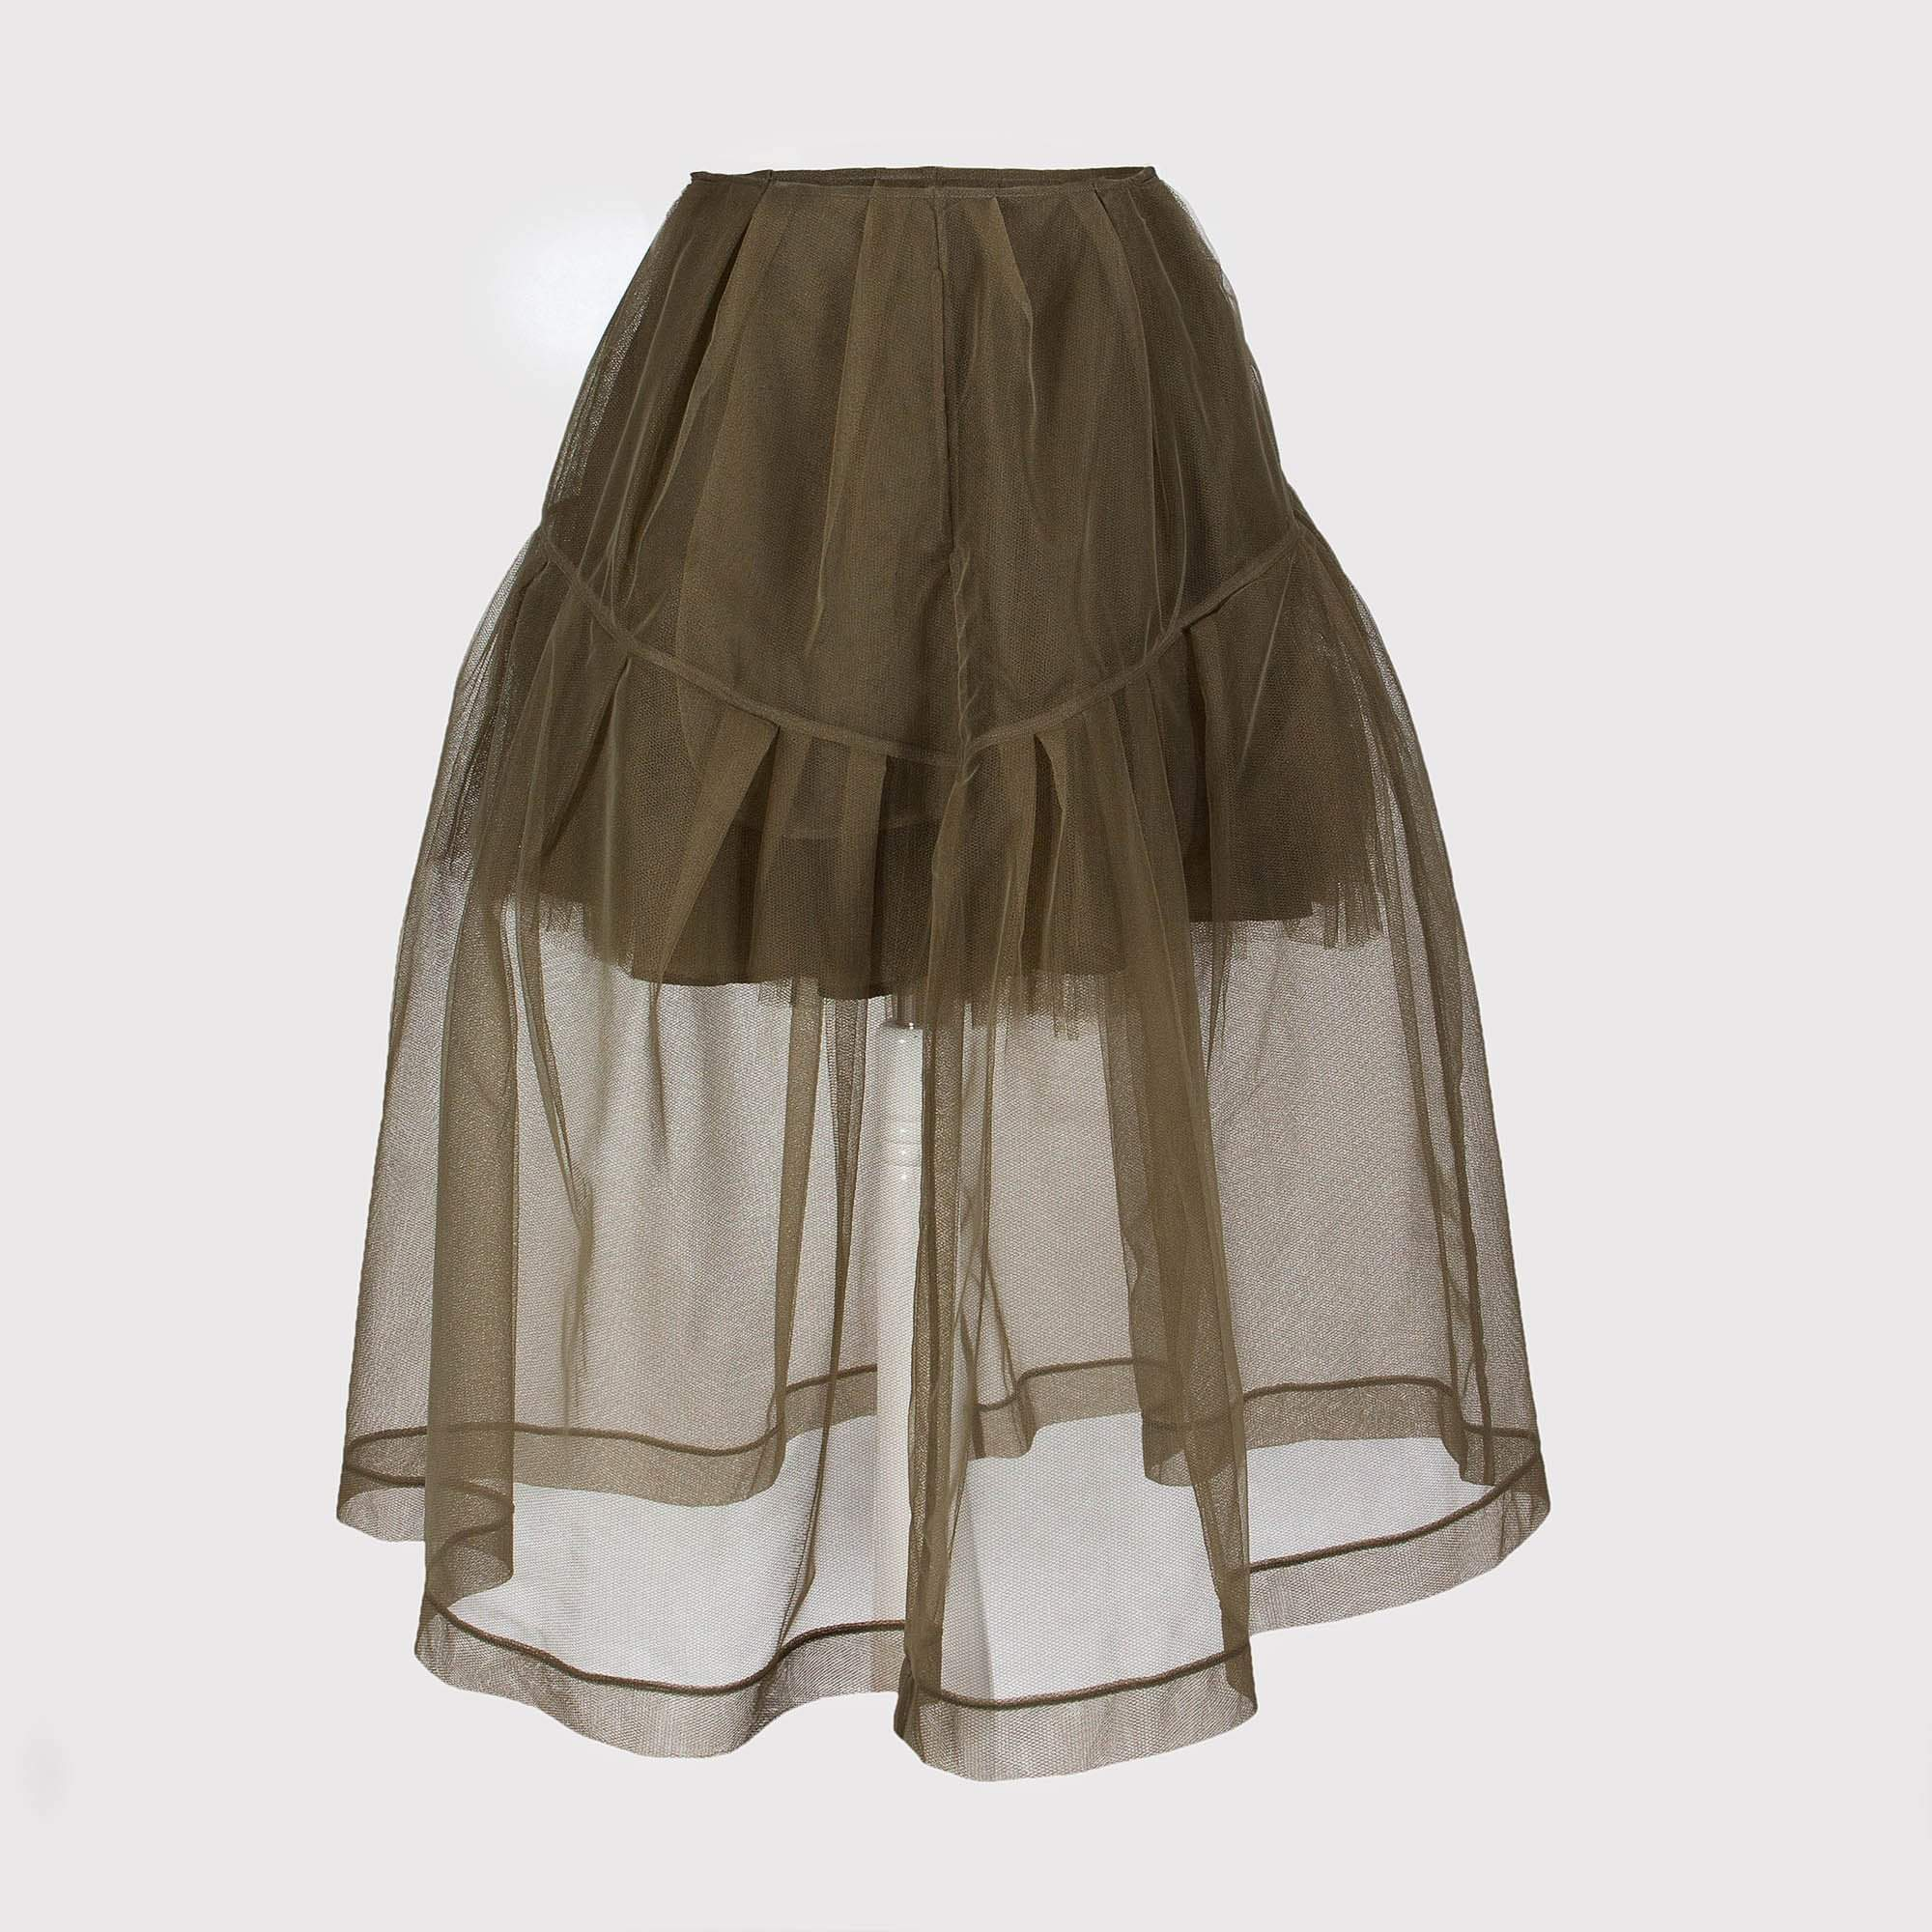 Simone Rocha Petticoat Sheer Trim Detail Skirt